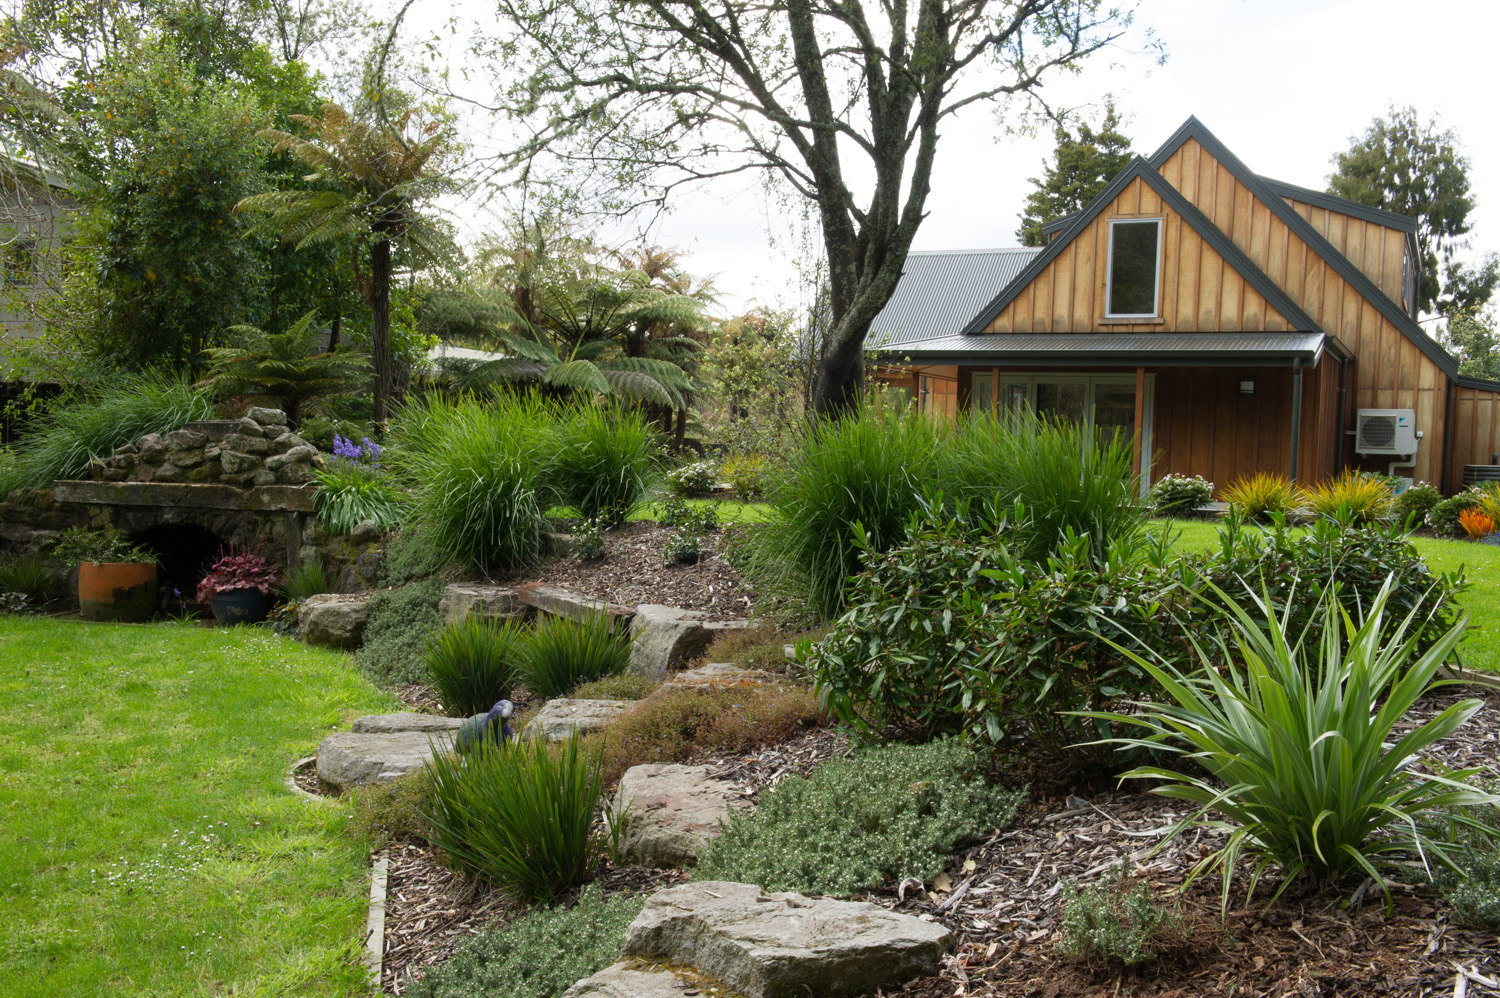 Rotorua landscape design michelle young landscapes ltd for Landscape design ideas nz